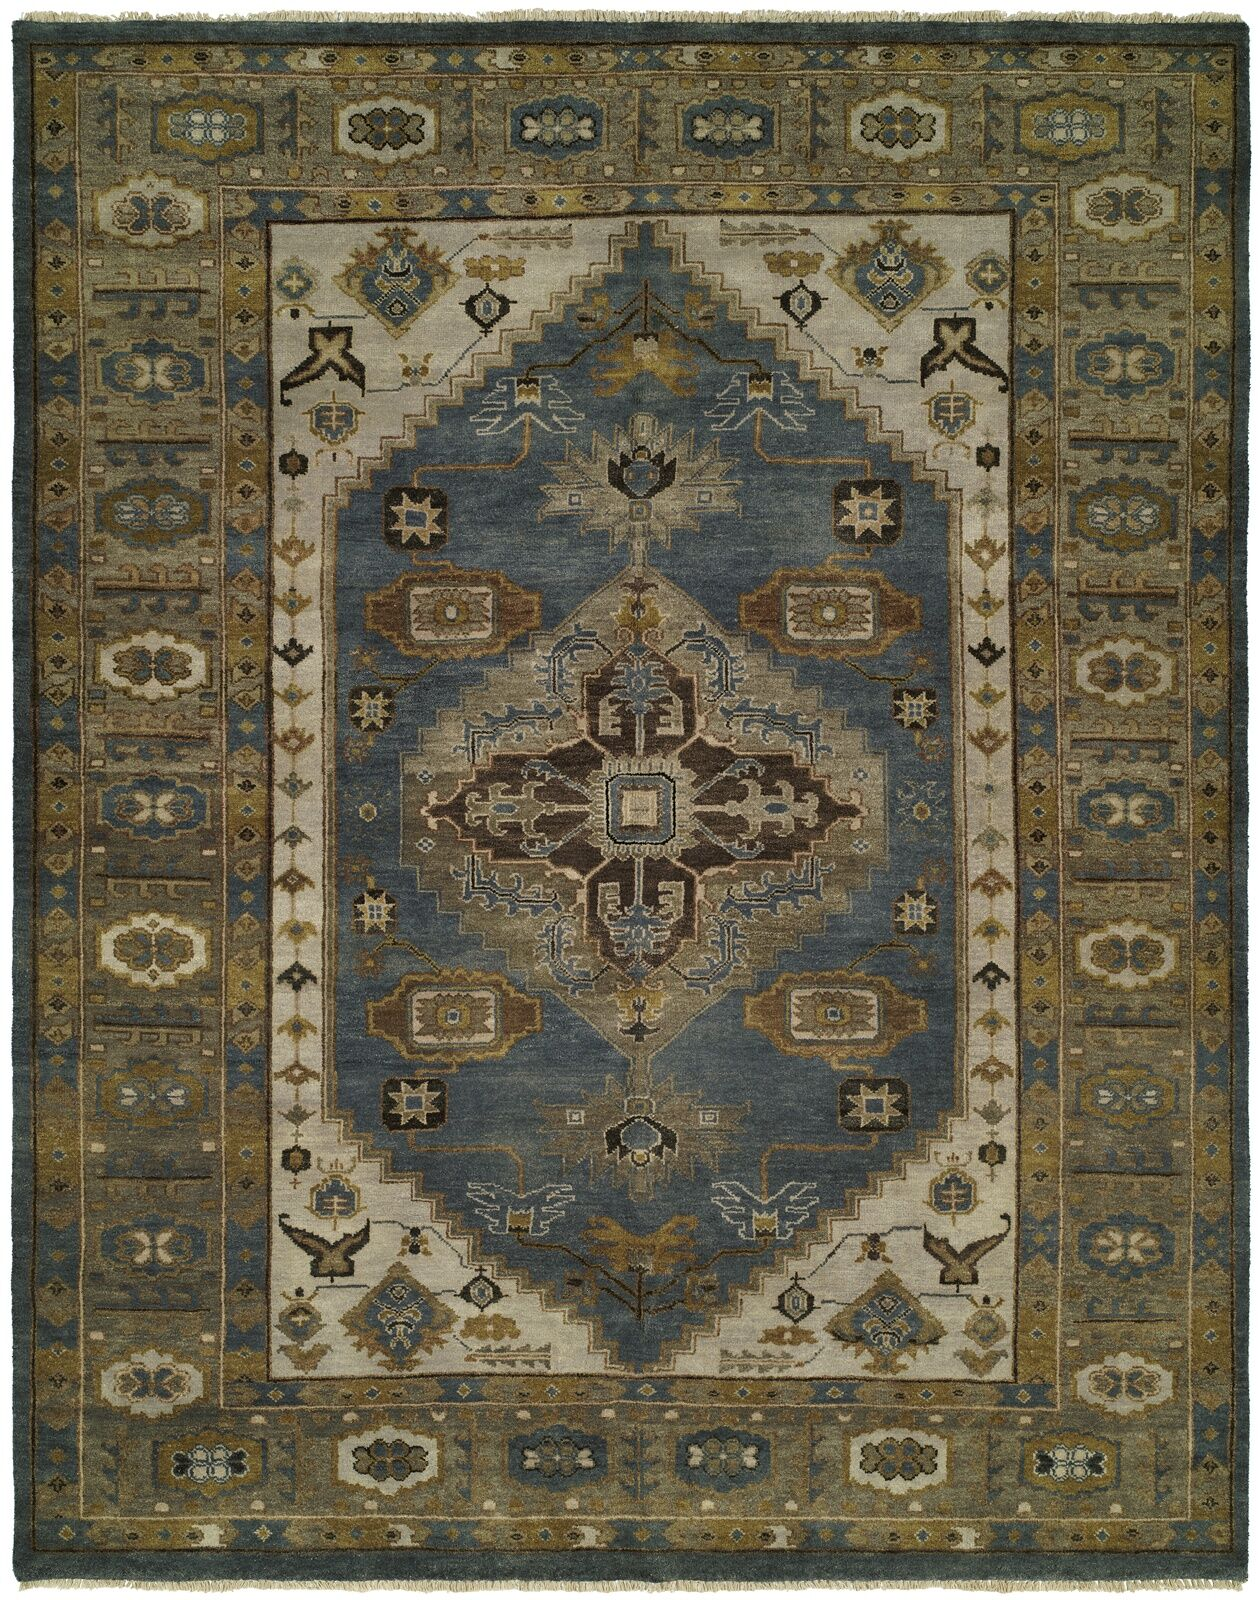 Mccarville Hand Knotted Wool Blue/Olive Area Rug Rug Size: Rectangle 4' x 6'